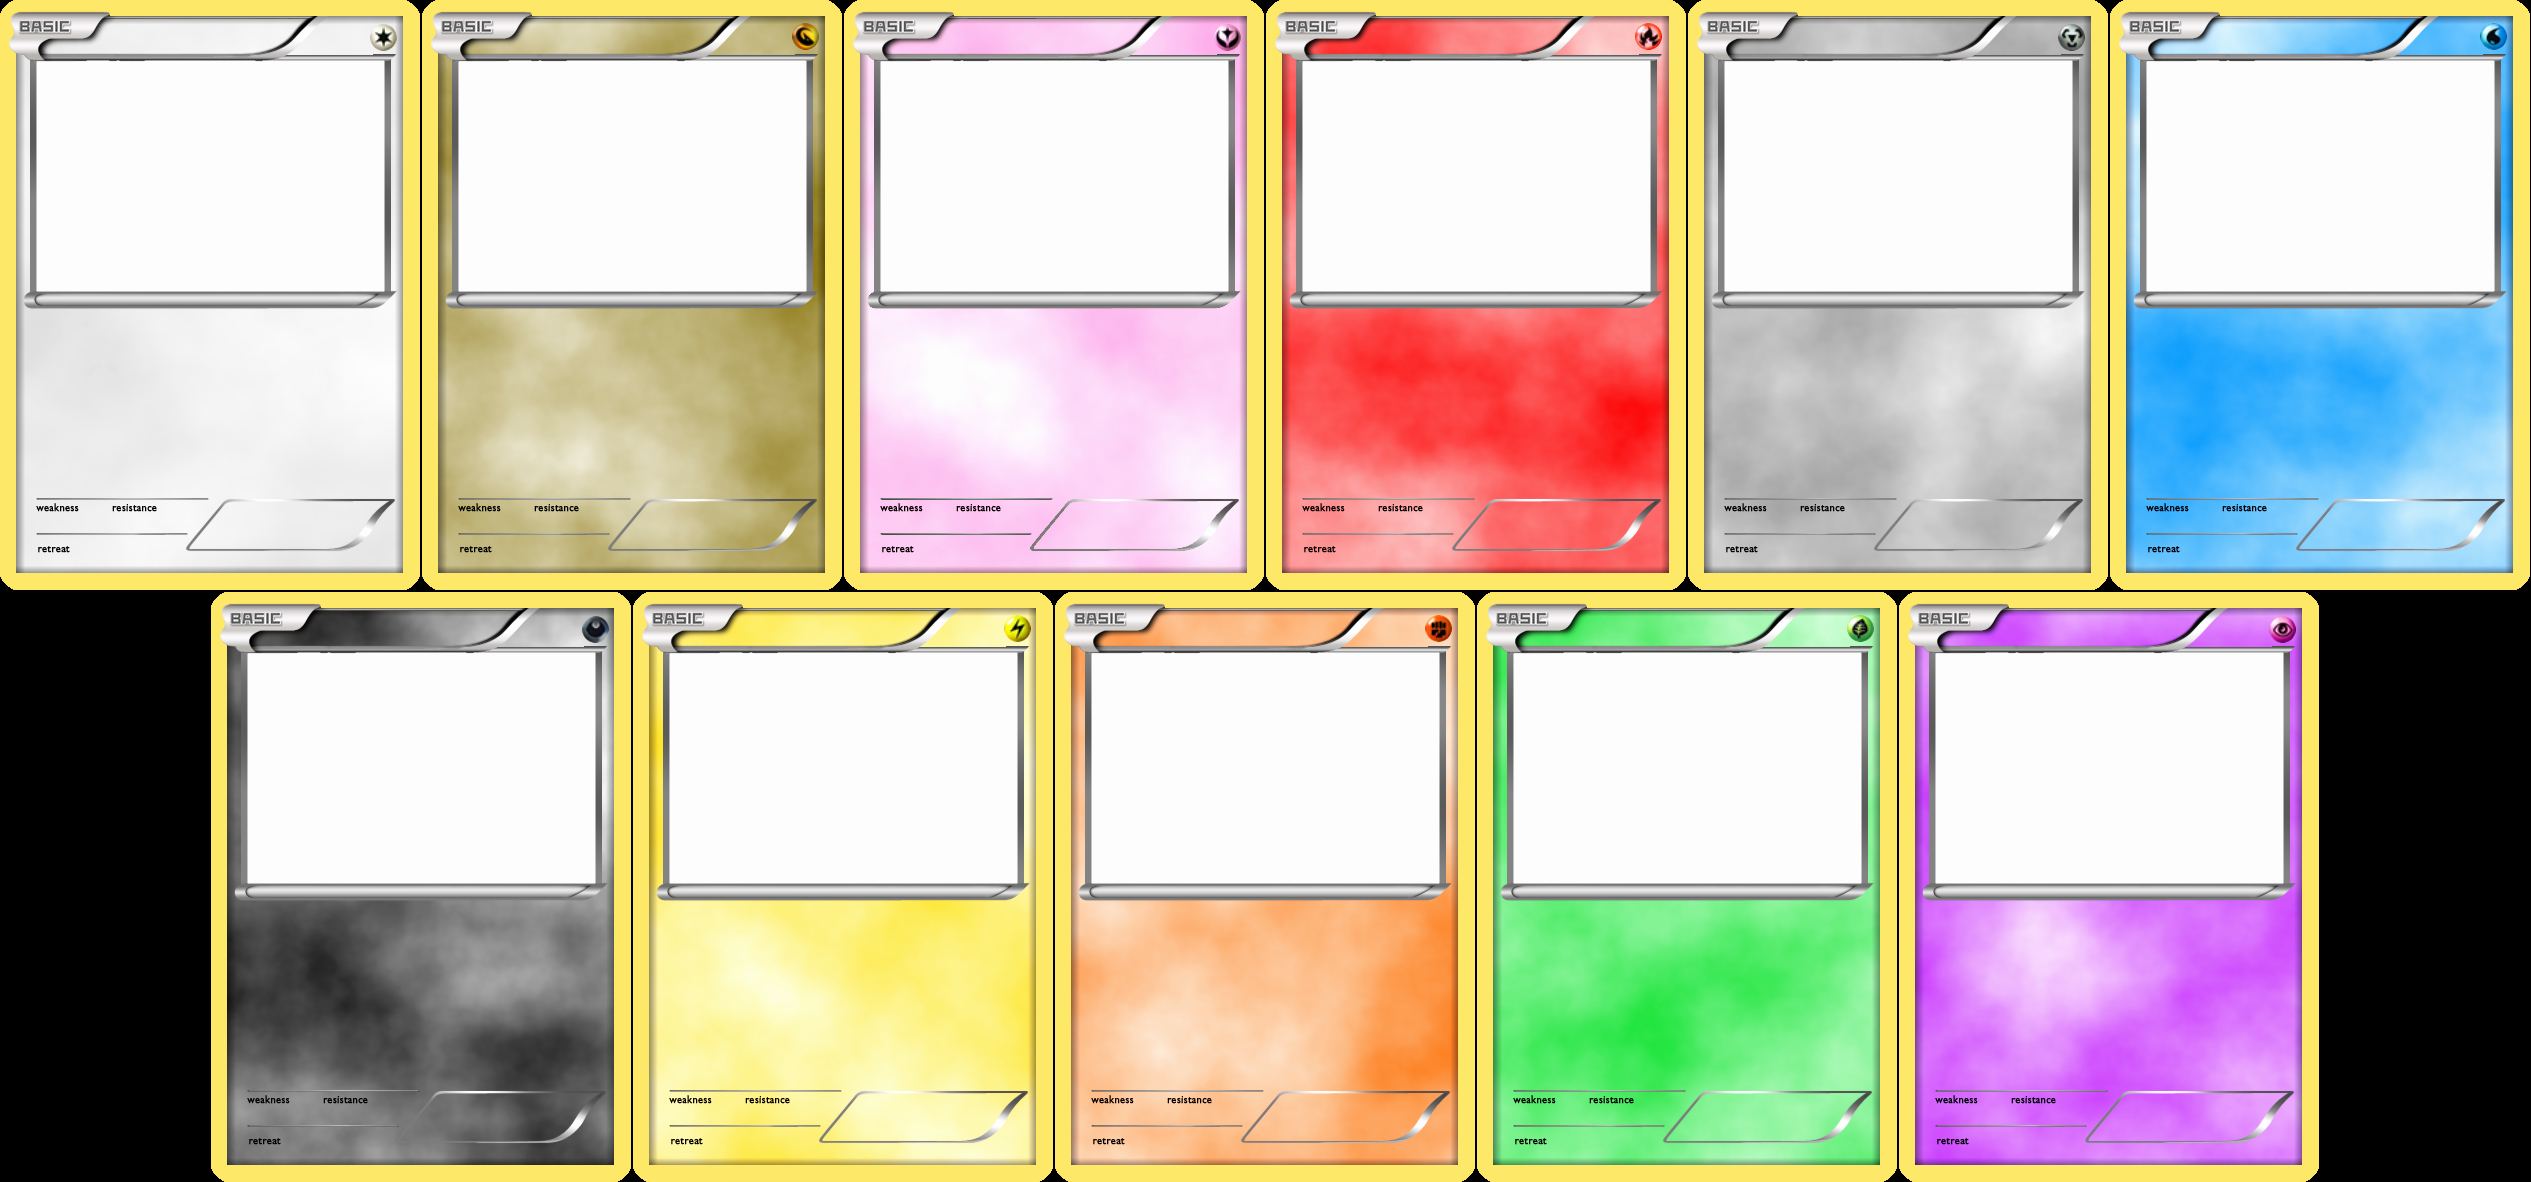 Trading Card Template Word Inspirational Pokemon Blank Card Templates by Levelinfinitum On Deviantart